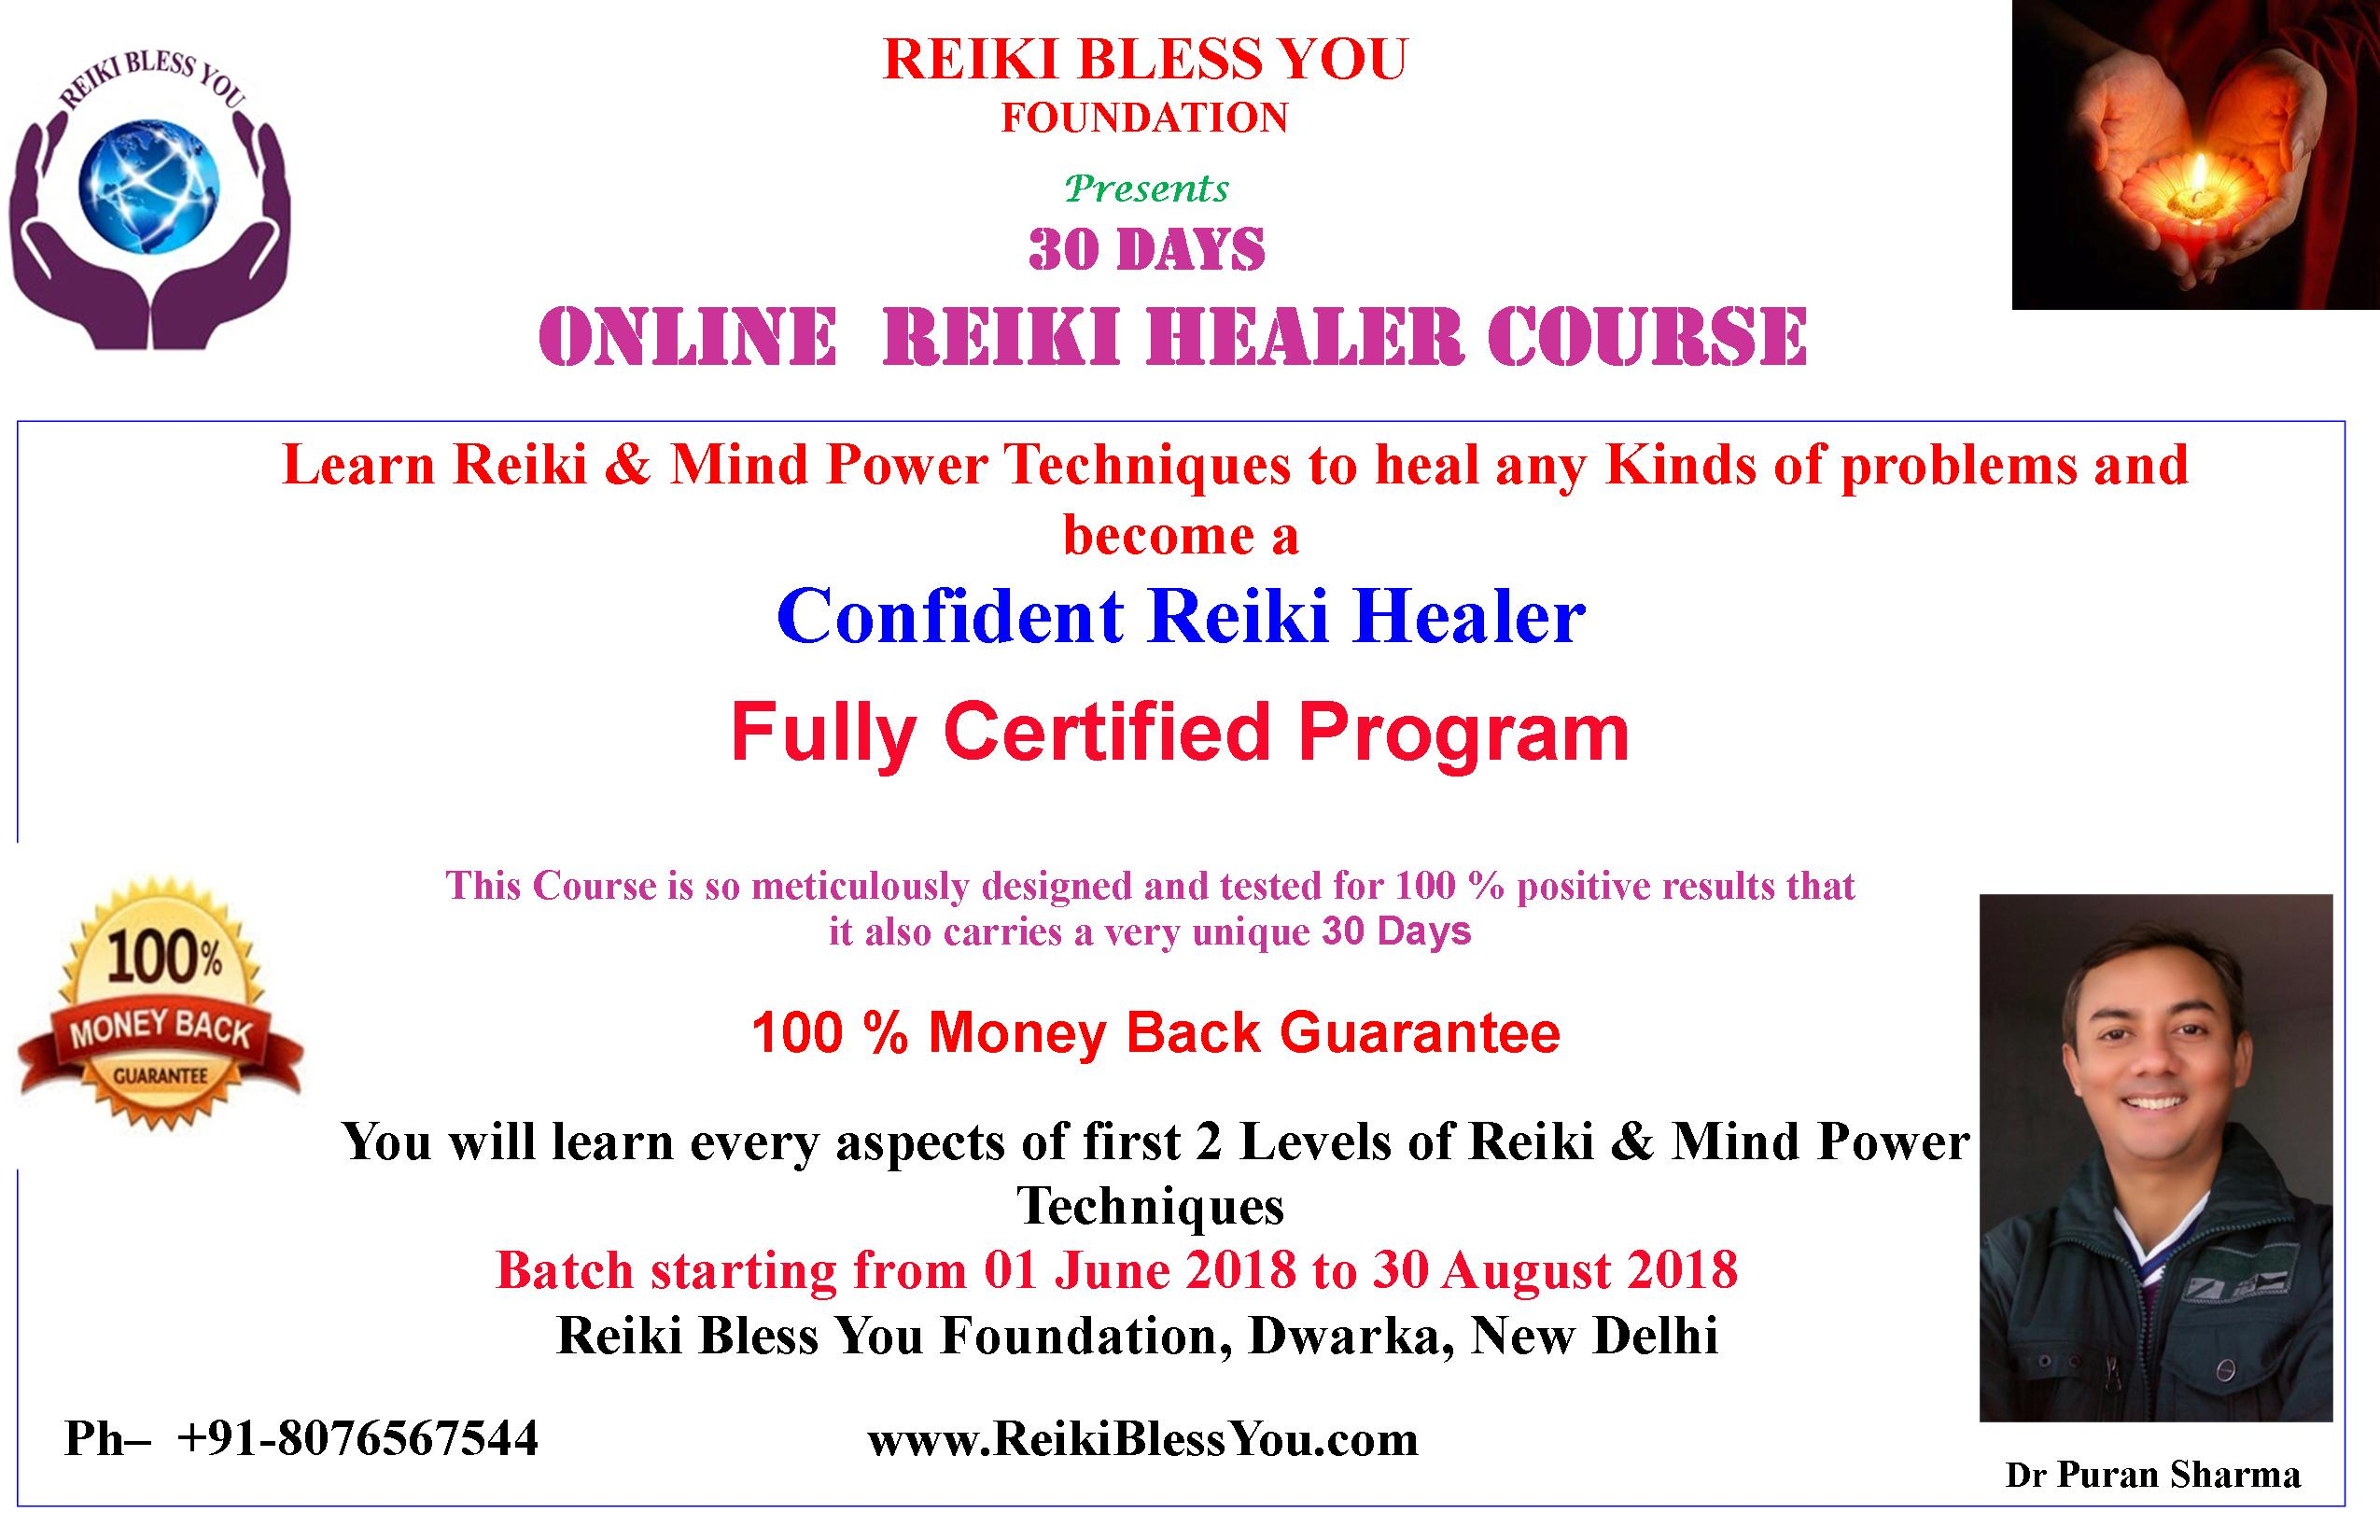 LEARN REIKI LEVEL 1 AND LEVEL 2 WITH BASIC MIND POWER TECHNIQUES  YOU WILL LEARN EVERY ASPECTS OF REIKI LEVEL 1 AND 2 AND BECOME COMPETENT ENOUGH TO SHOW YOUR HEALING CAPABILITIES WHEREVER IT IS NEEDED.  A VERY PRACTICAL REIKI HEALING COURSE  STEP-BY-STEP GUIDANCE BY REIKI GRAND MASTER DR PURAN SHARMA